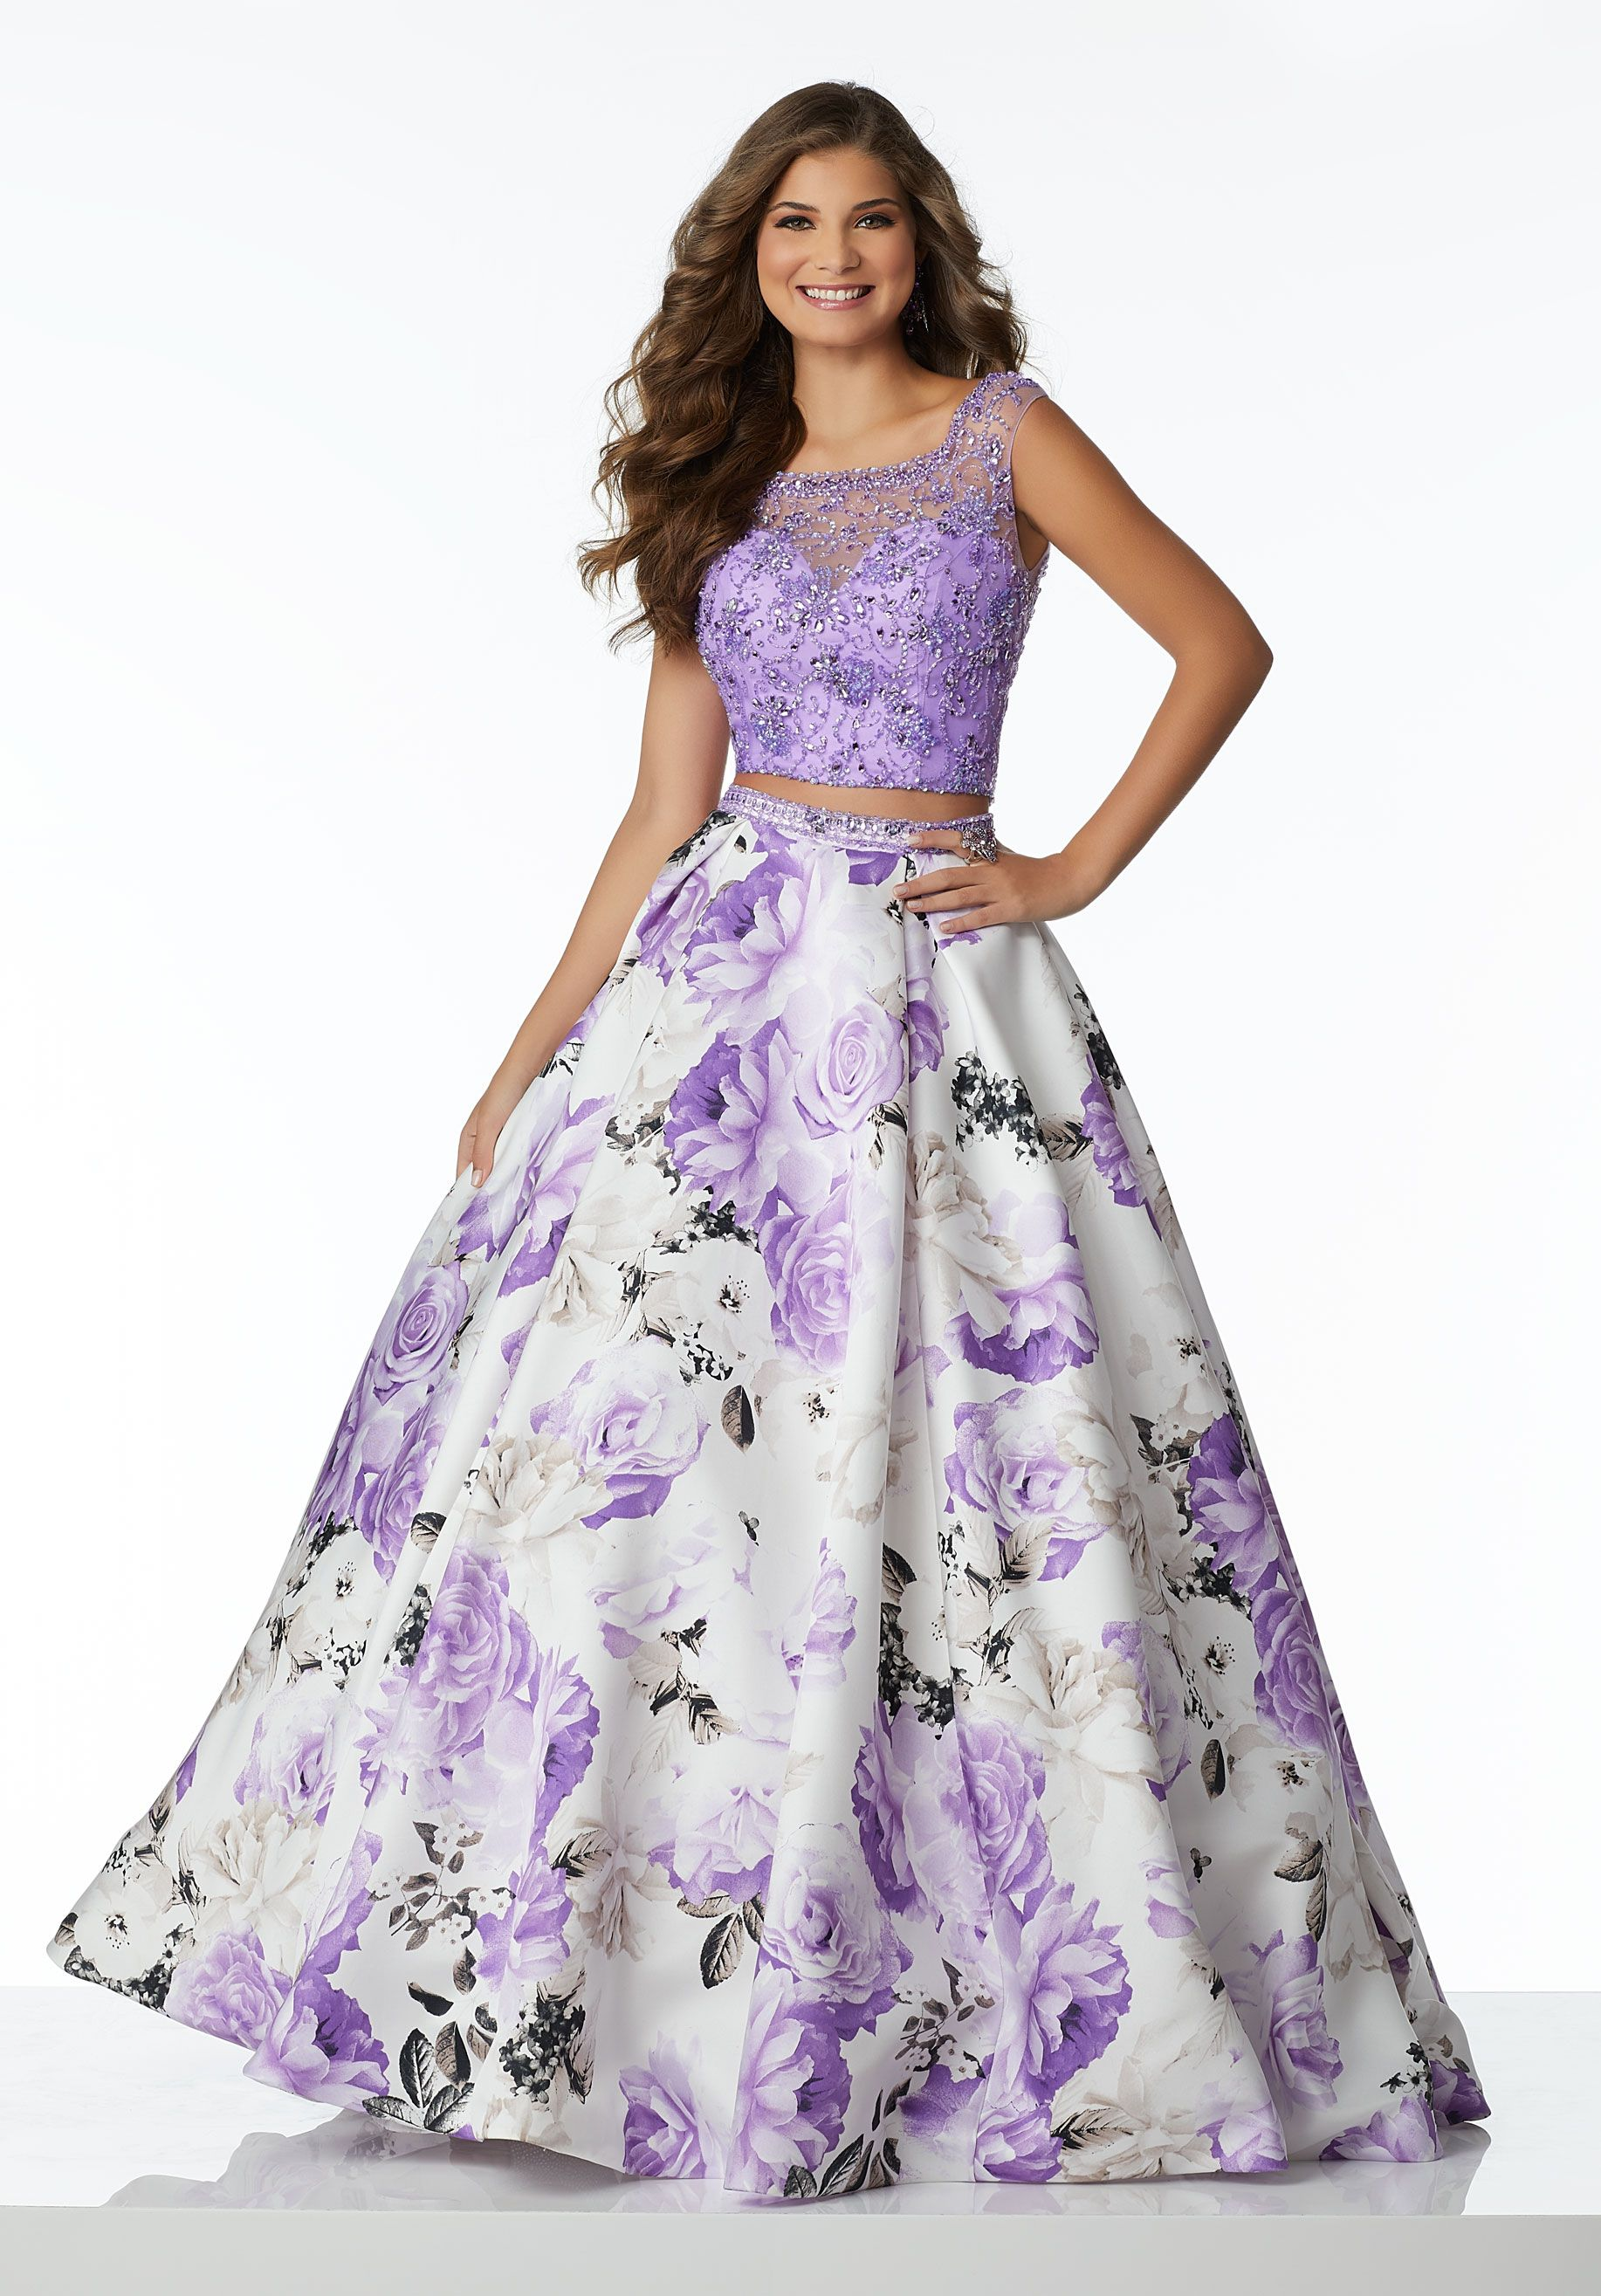 Floral Printed Two-Piece Ballgown Featuring a Delicately Beaded Bodice and  Full A-Line Skirt ead15bb50b9e